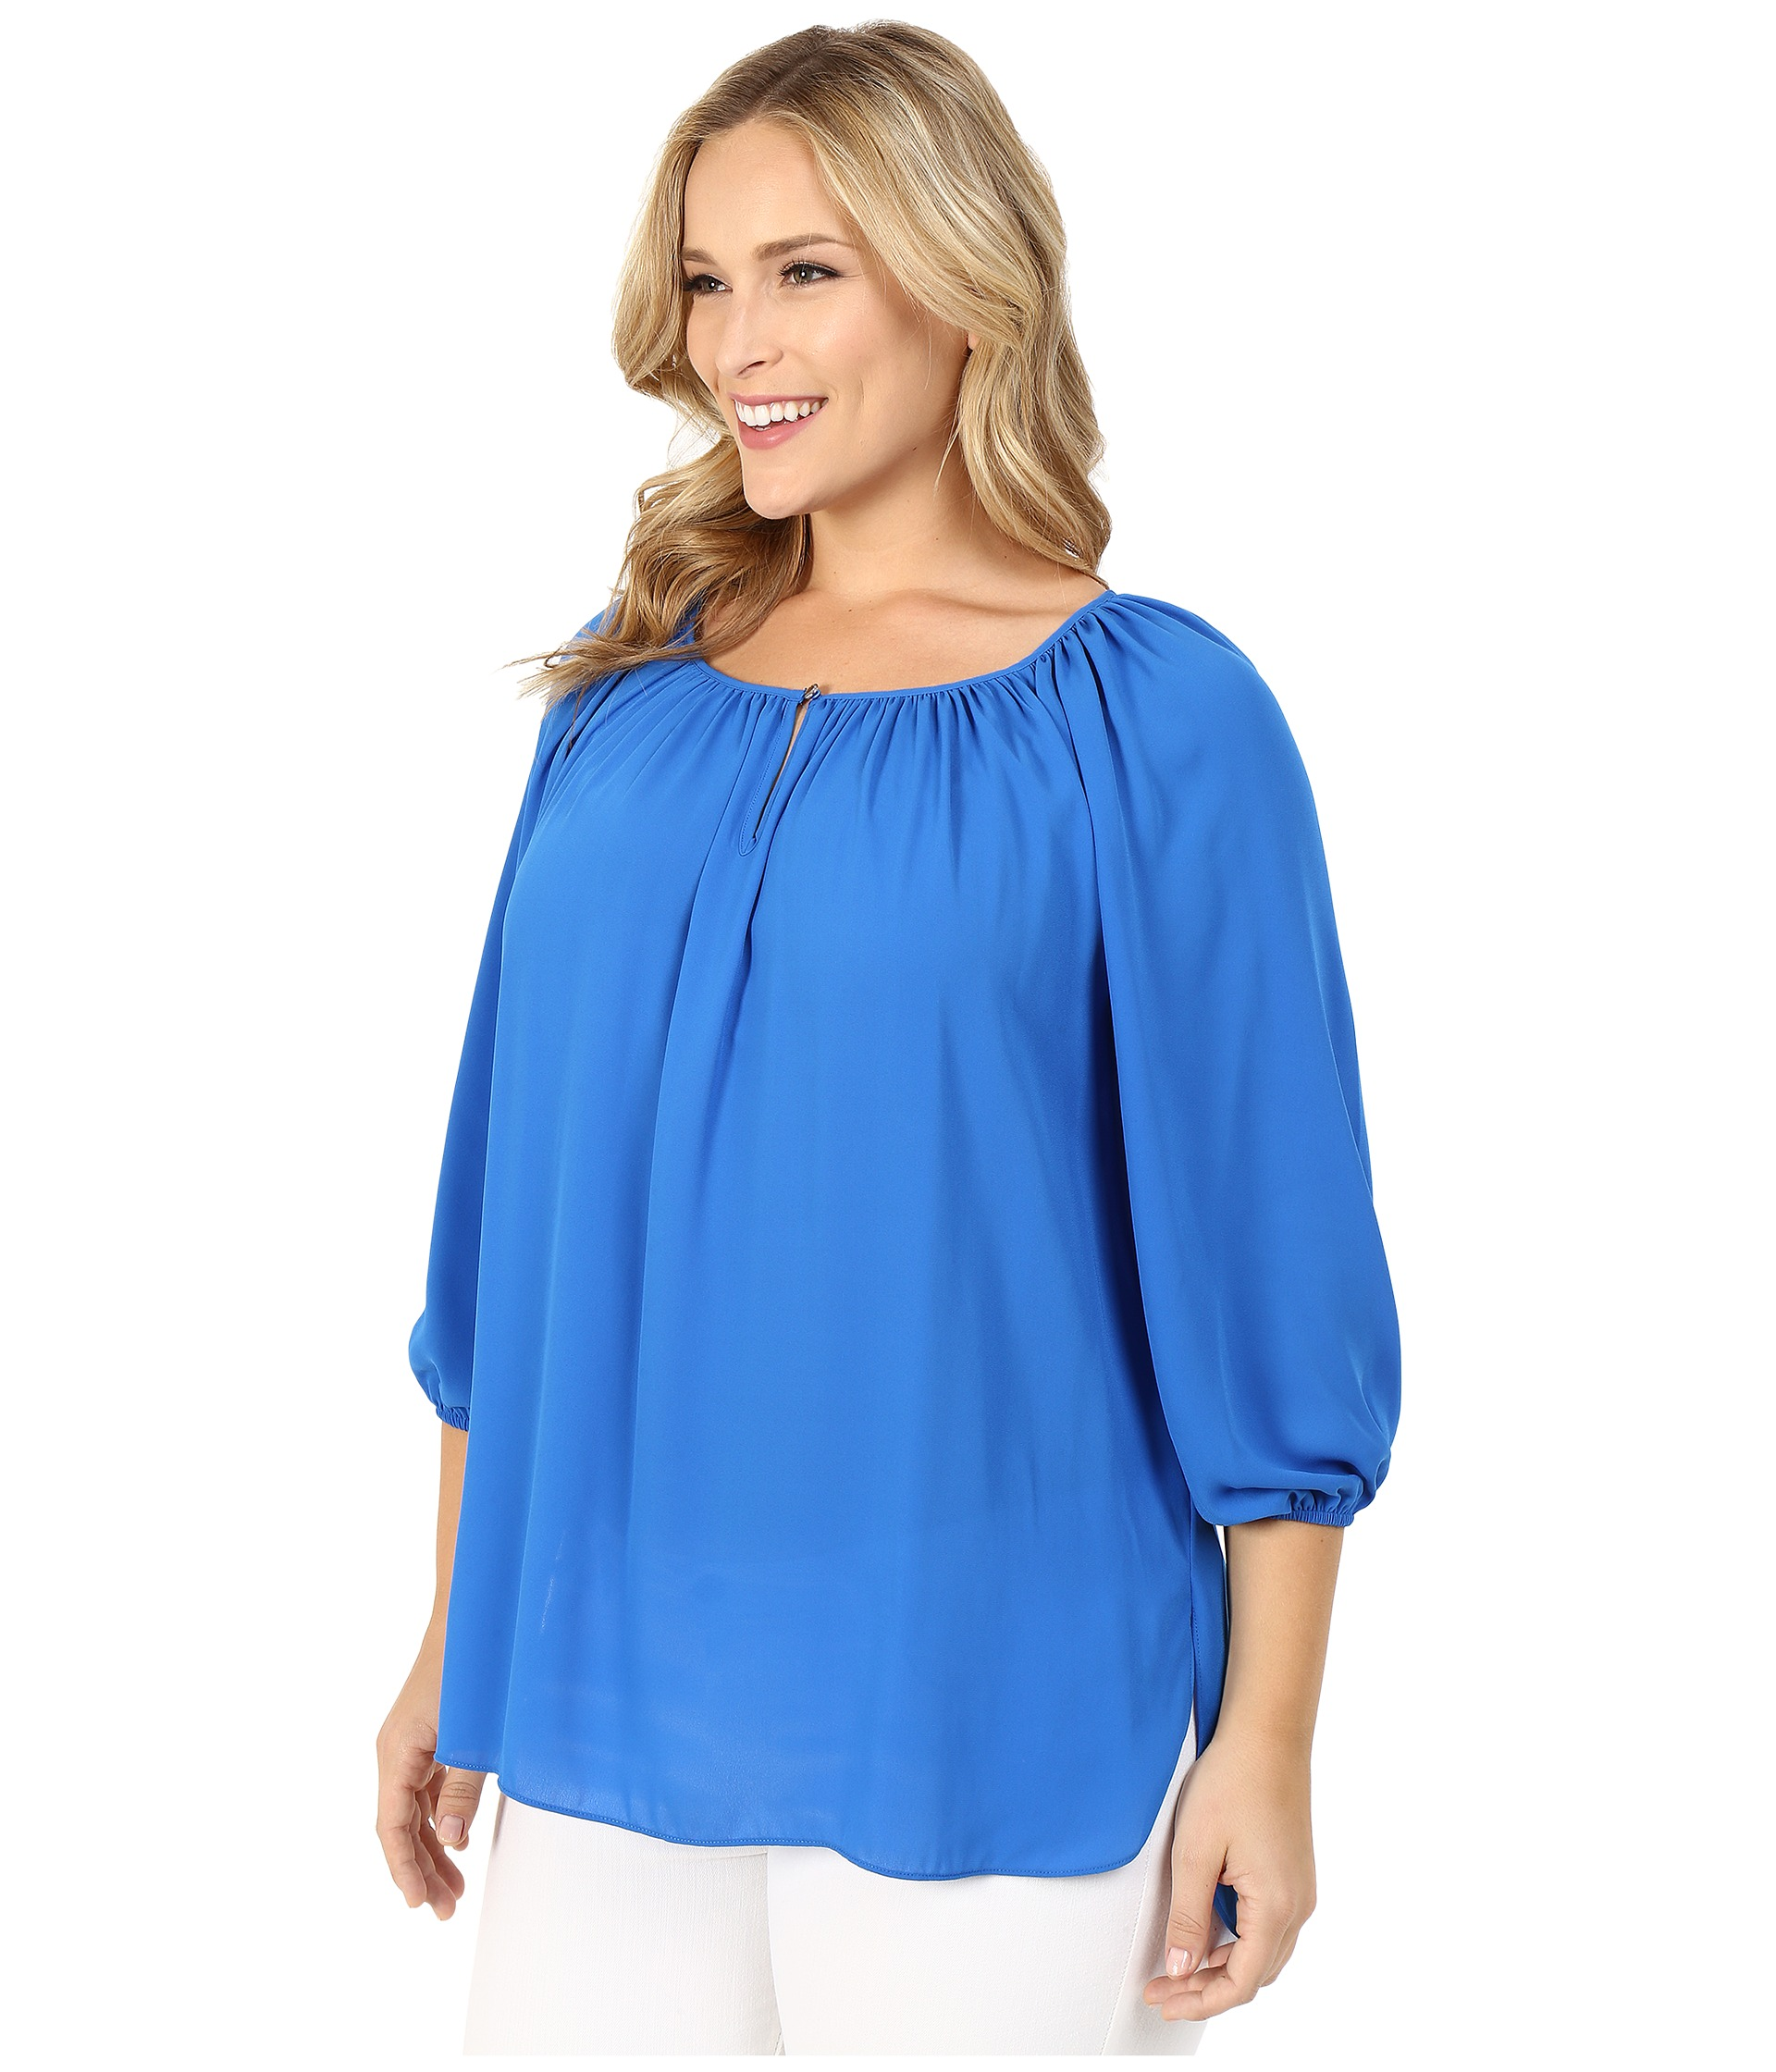 Find a designer blouse to complement your look. Hudson's Bay has a great selection of women's blouses, and free shipping within Canada on orders over $99!